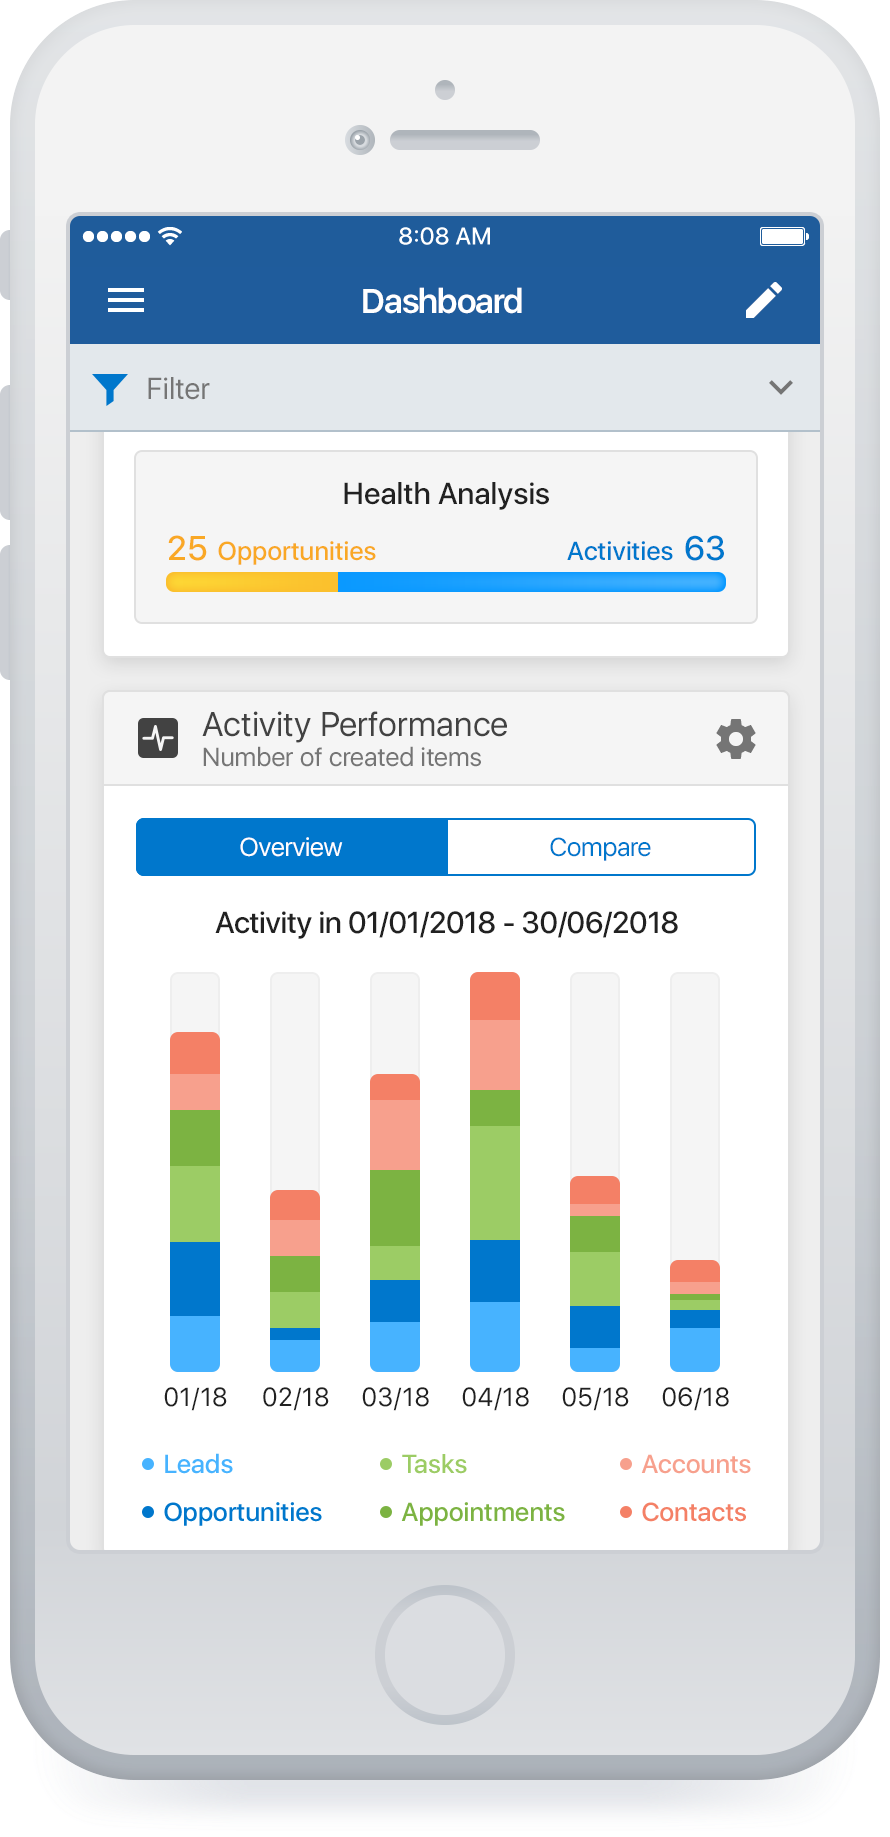 Mobile crm dashboard